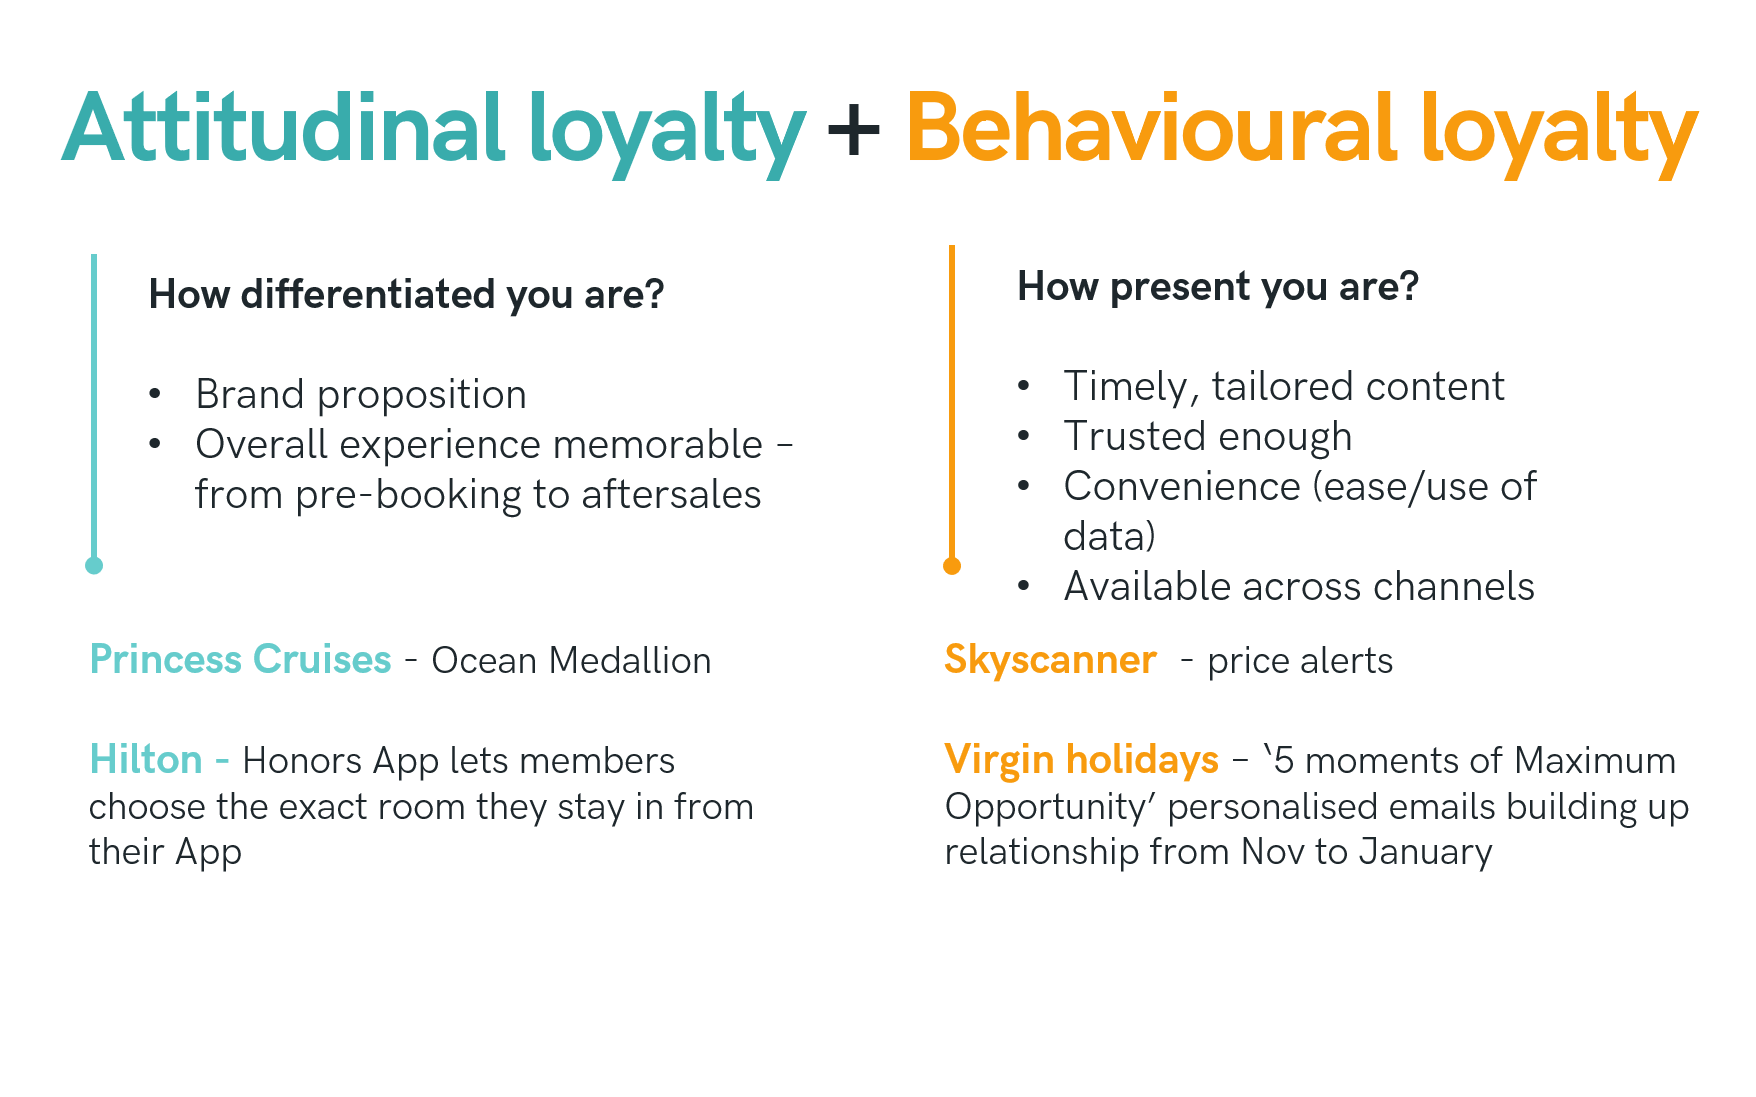 Attitudinal and Behavioural loyalty